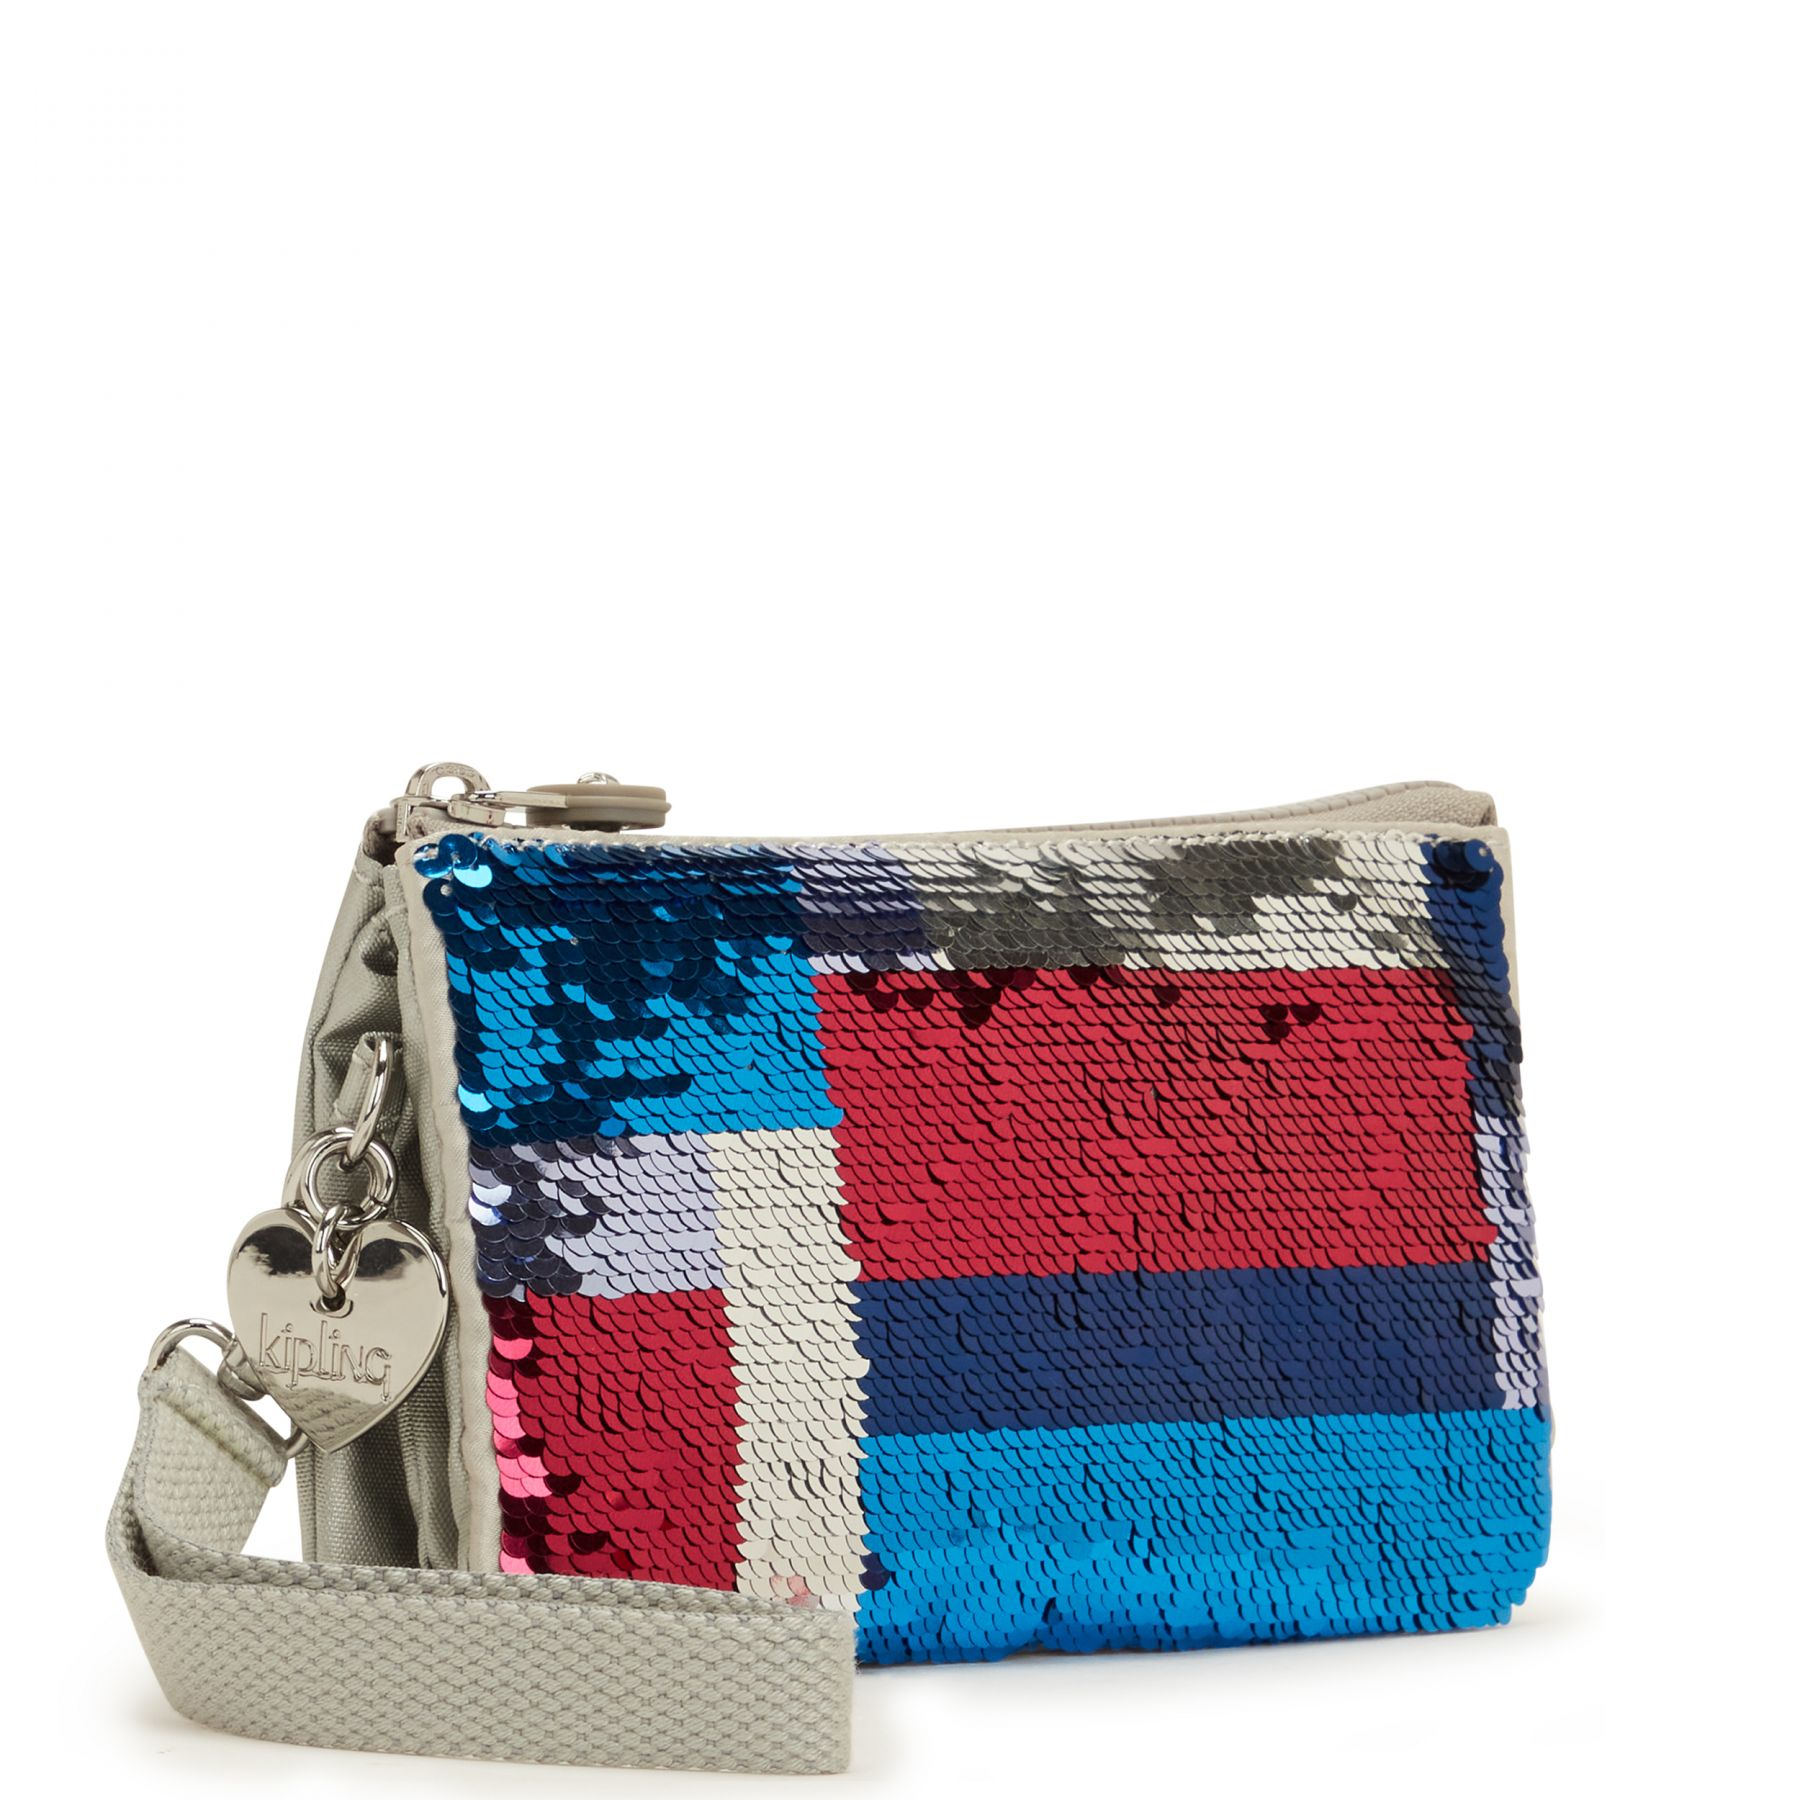 CREATIVITY L ACCESSORIES by Kipling - view 4